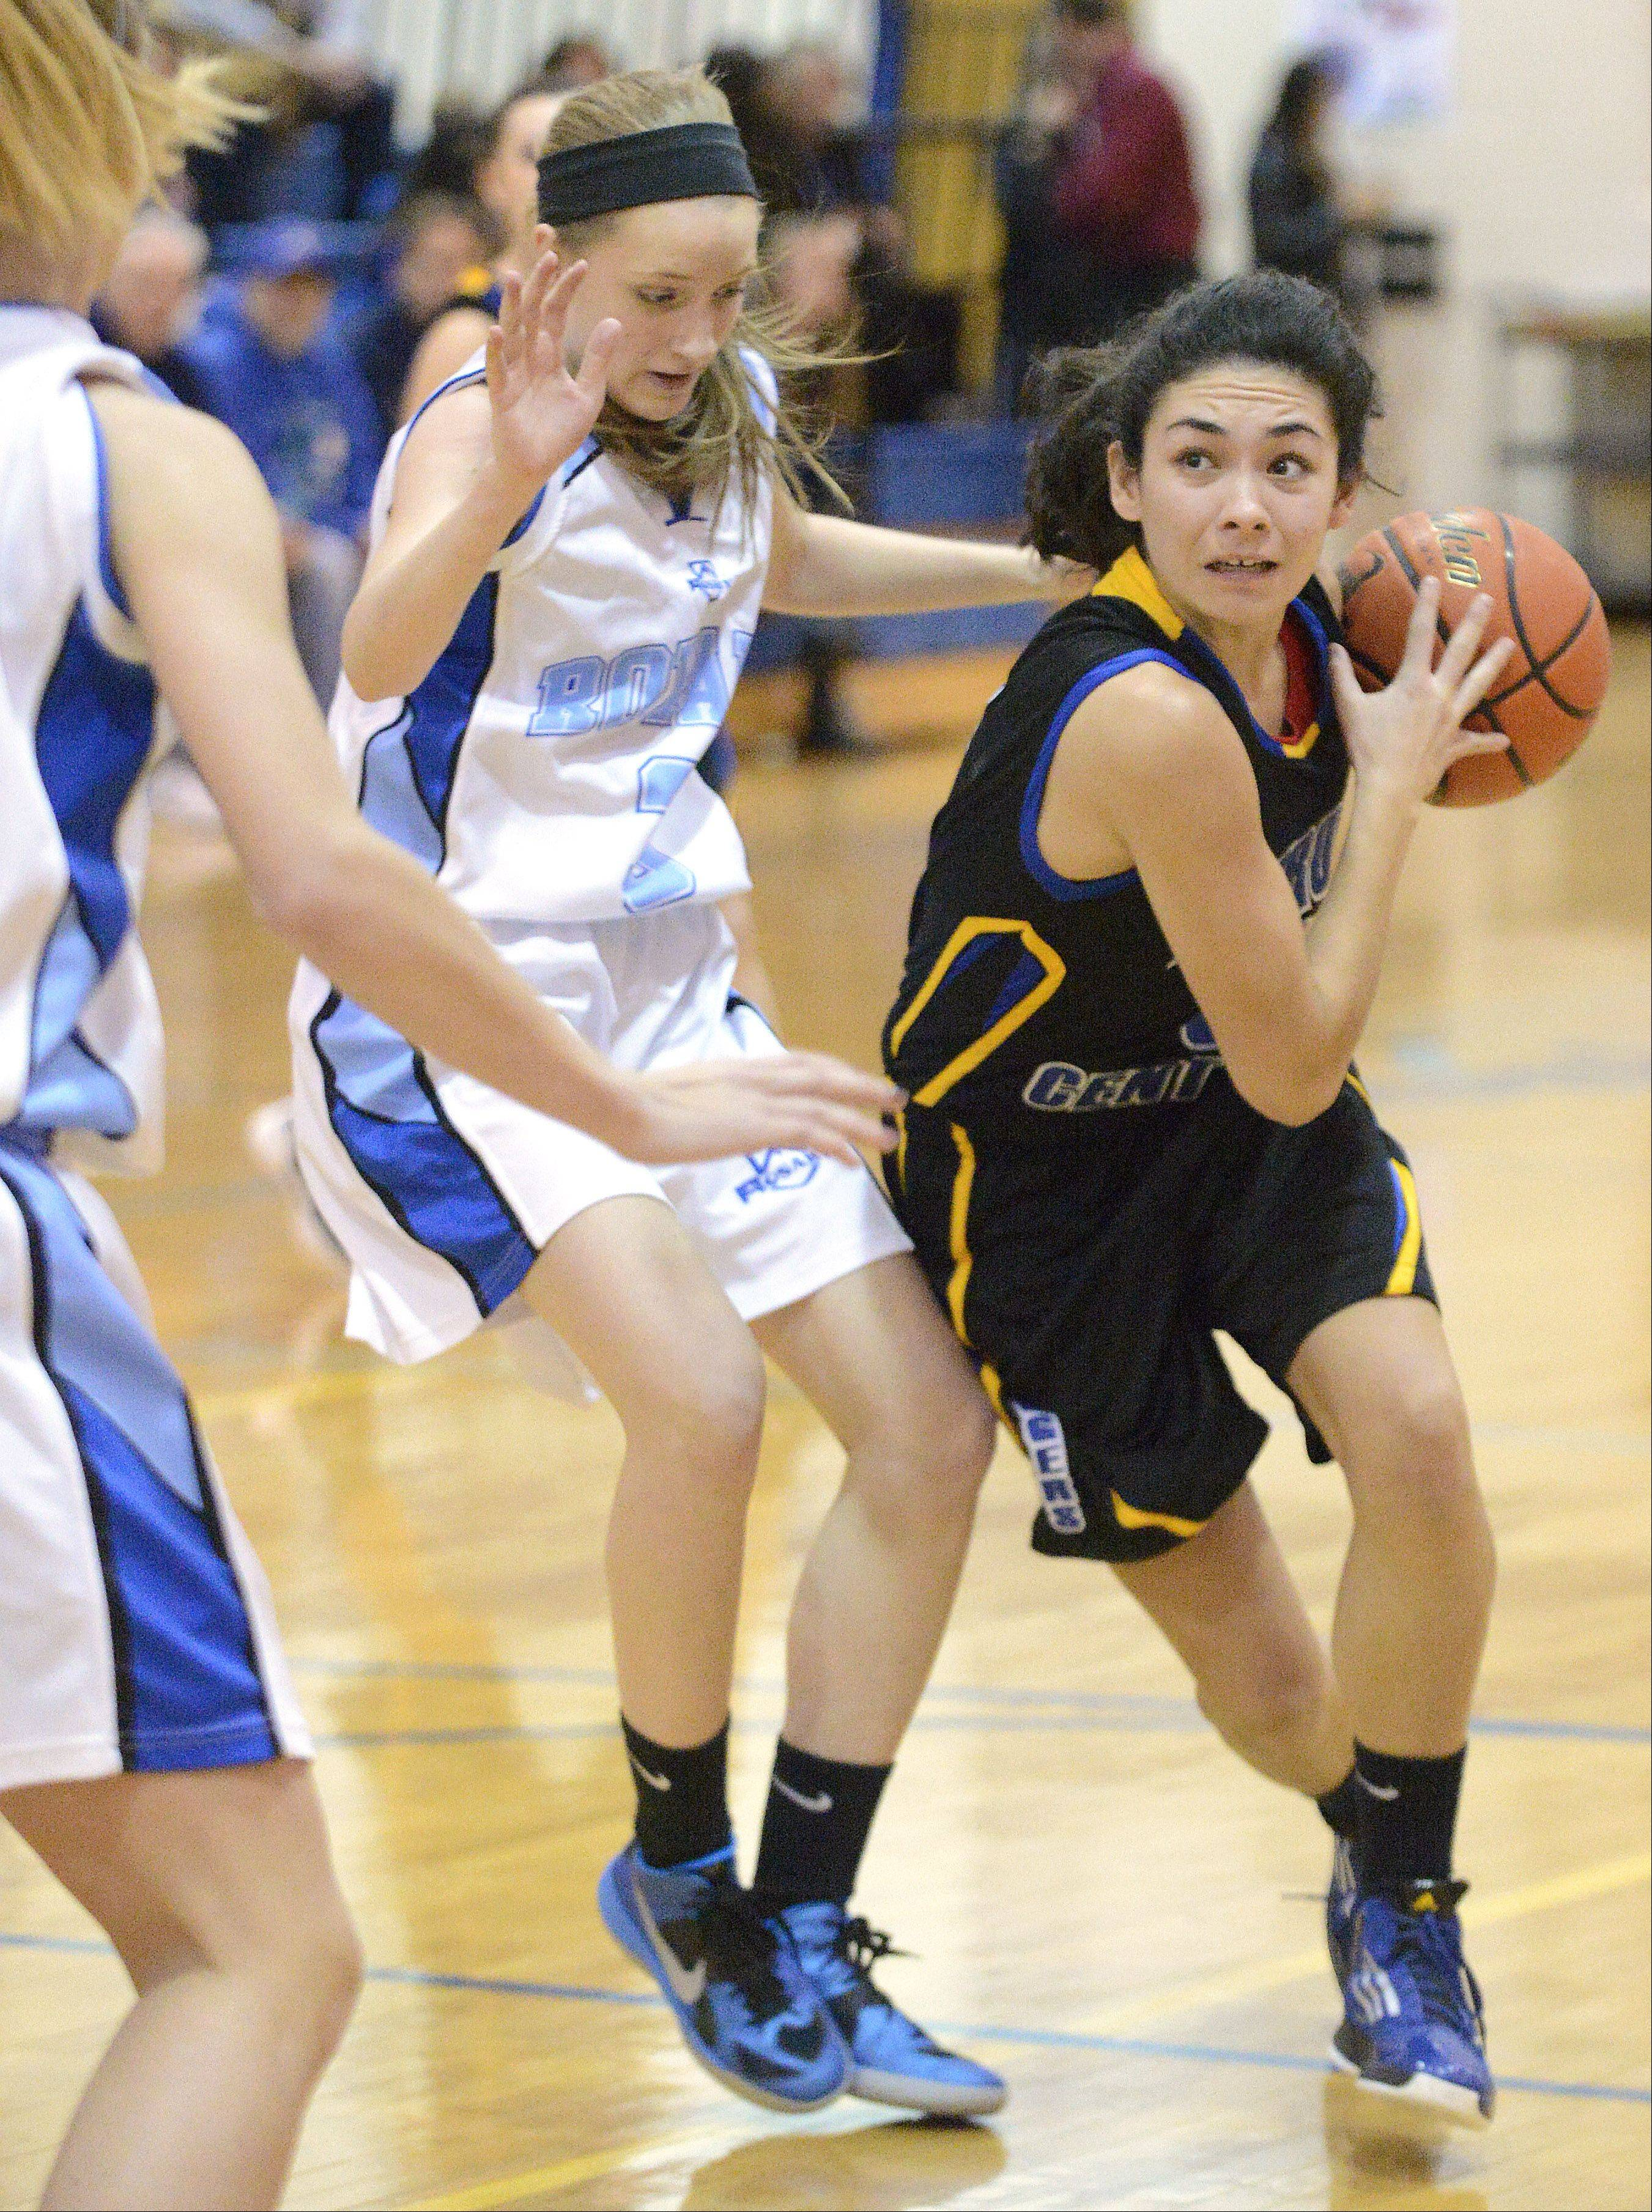 Aurora Central Catholic's Lisa Rodriguez pushes past Rosary's Rachel Choice as she drives for the hoop in the first quarter.